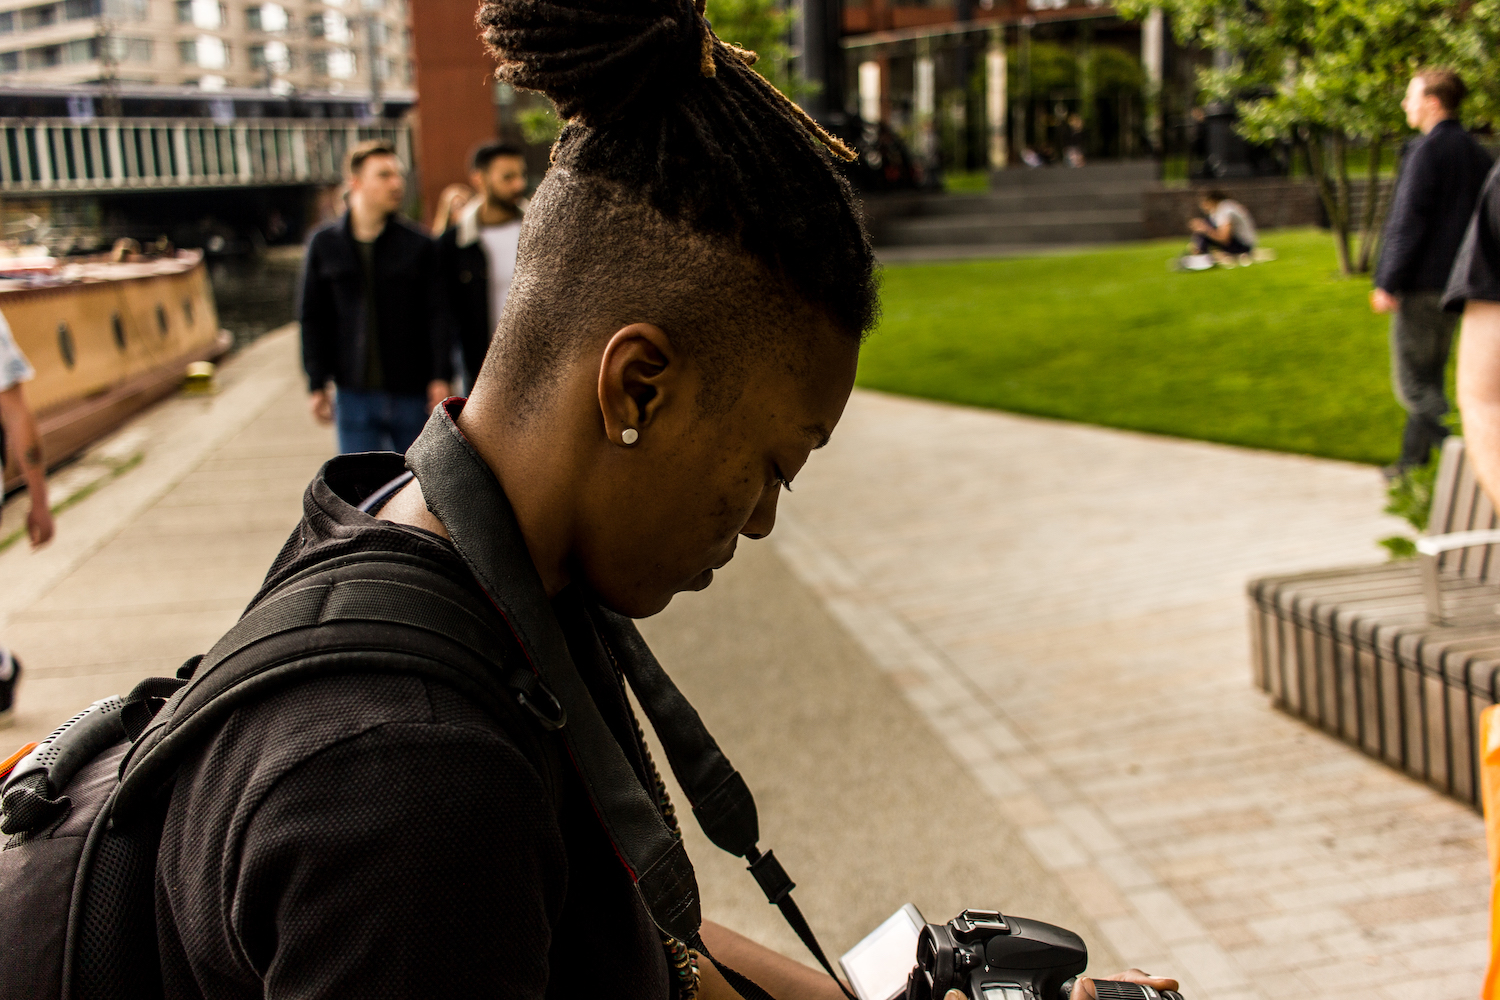 Professional Photography Black Woman Wearing Black T-Shirt With Black Backpack And Dreadlocks Filming With Camera Green Grass And People In Background Camden London